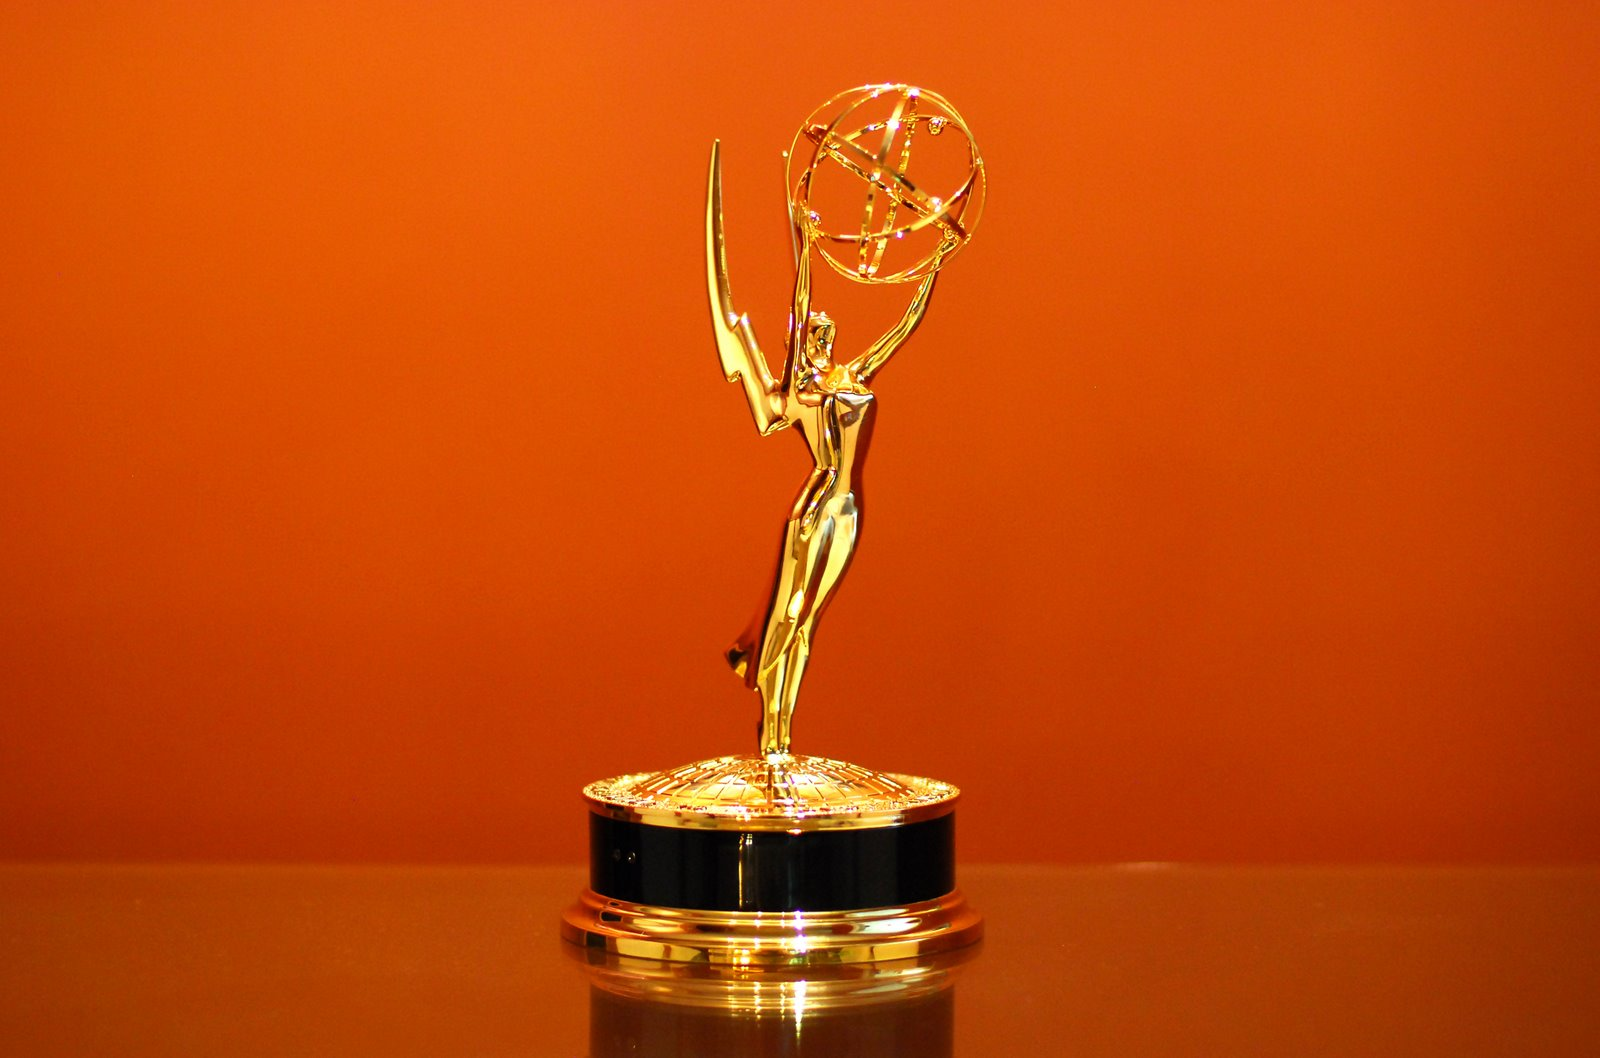 Dating as well Weiu News Watch Wins Another Student Emmy Award as well Fug The Fromage Mannequin 07 2013 likewise Grammy Awards Who Decided Winners News 135790864 furthermore 2012 Diy Oscar Party. on emmy trophy